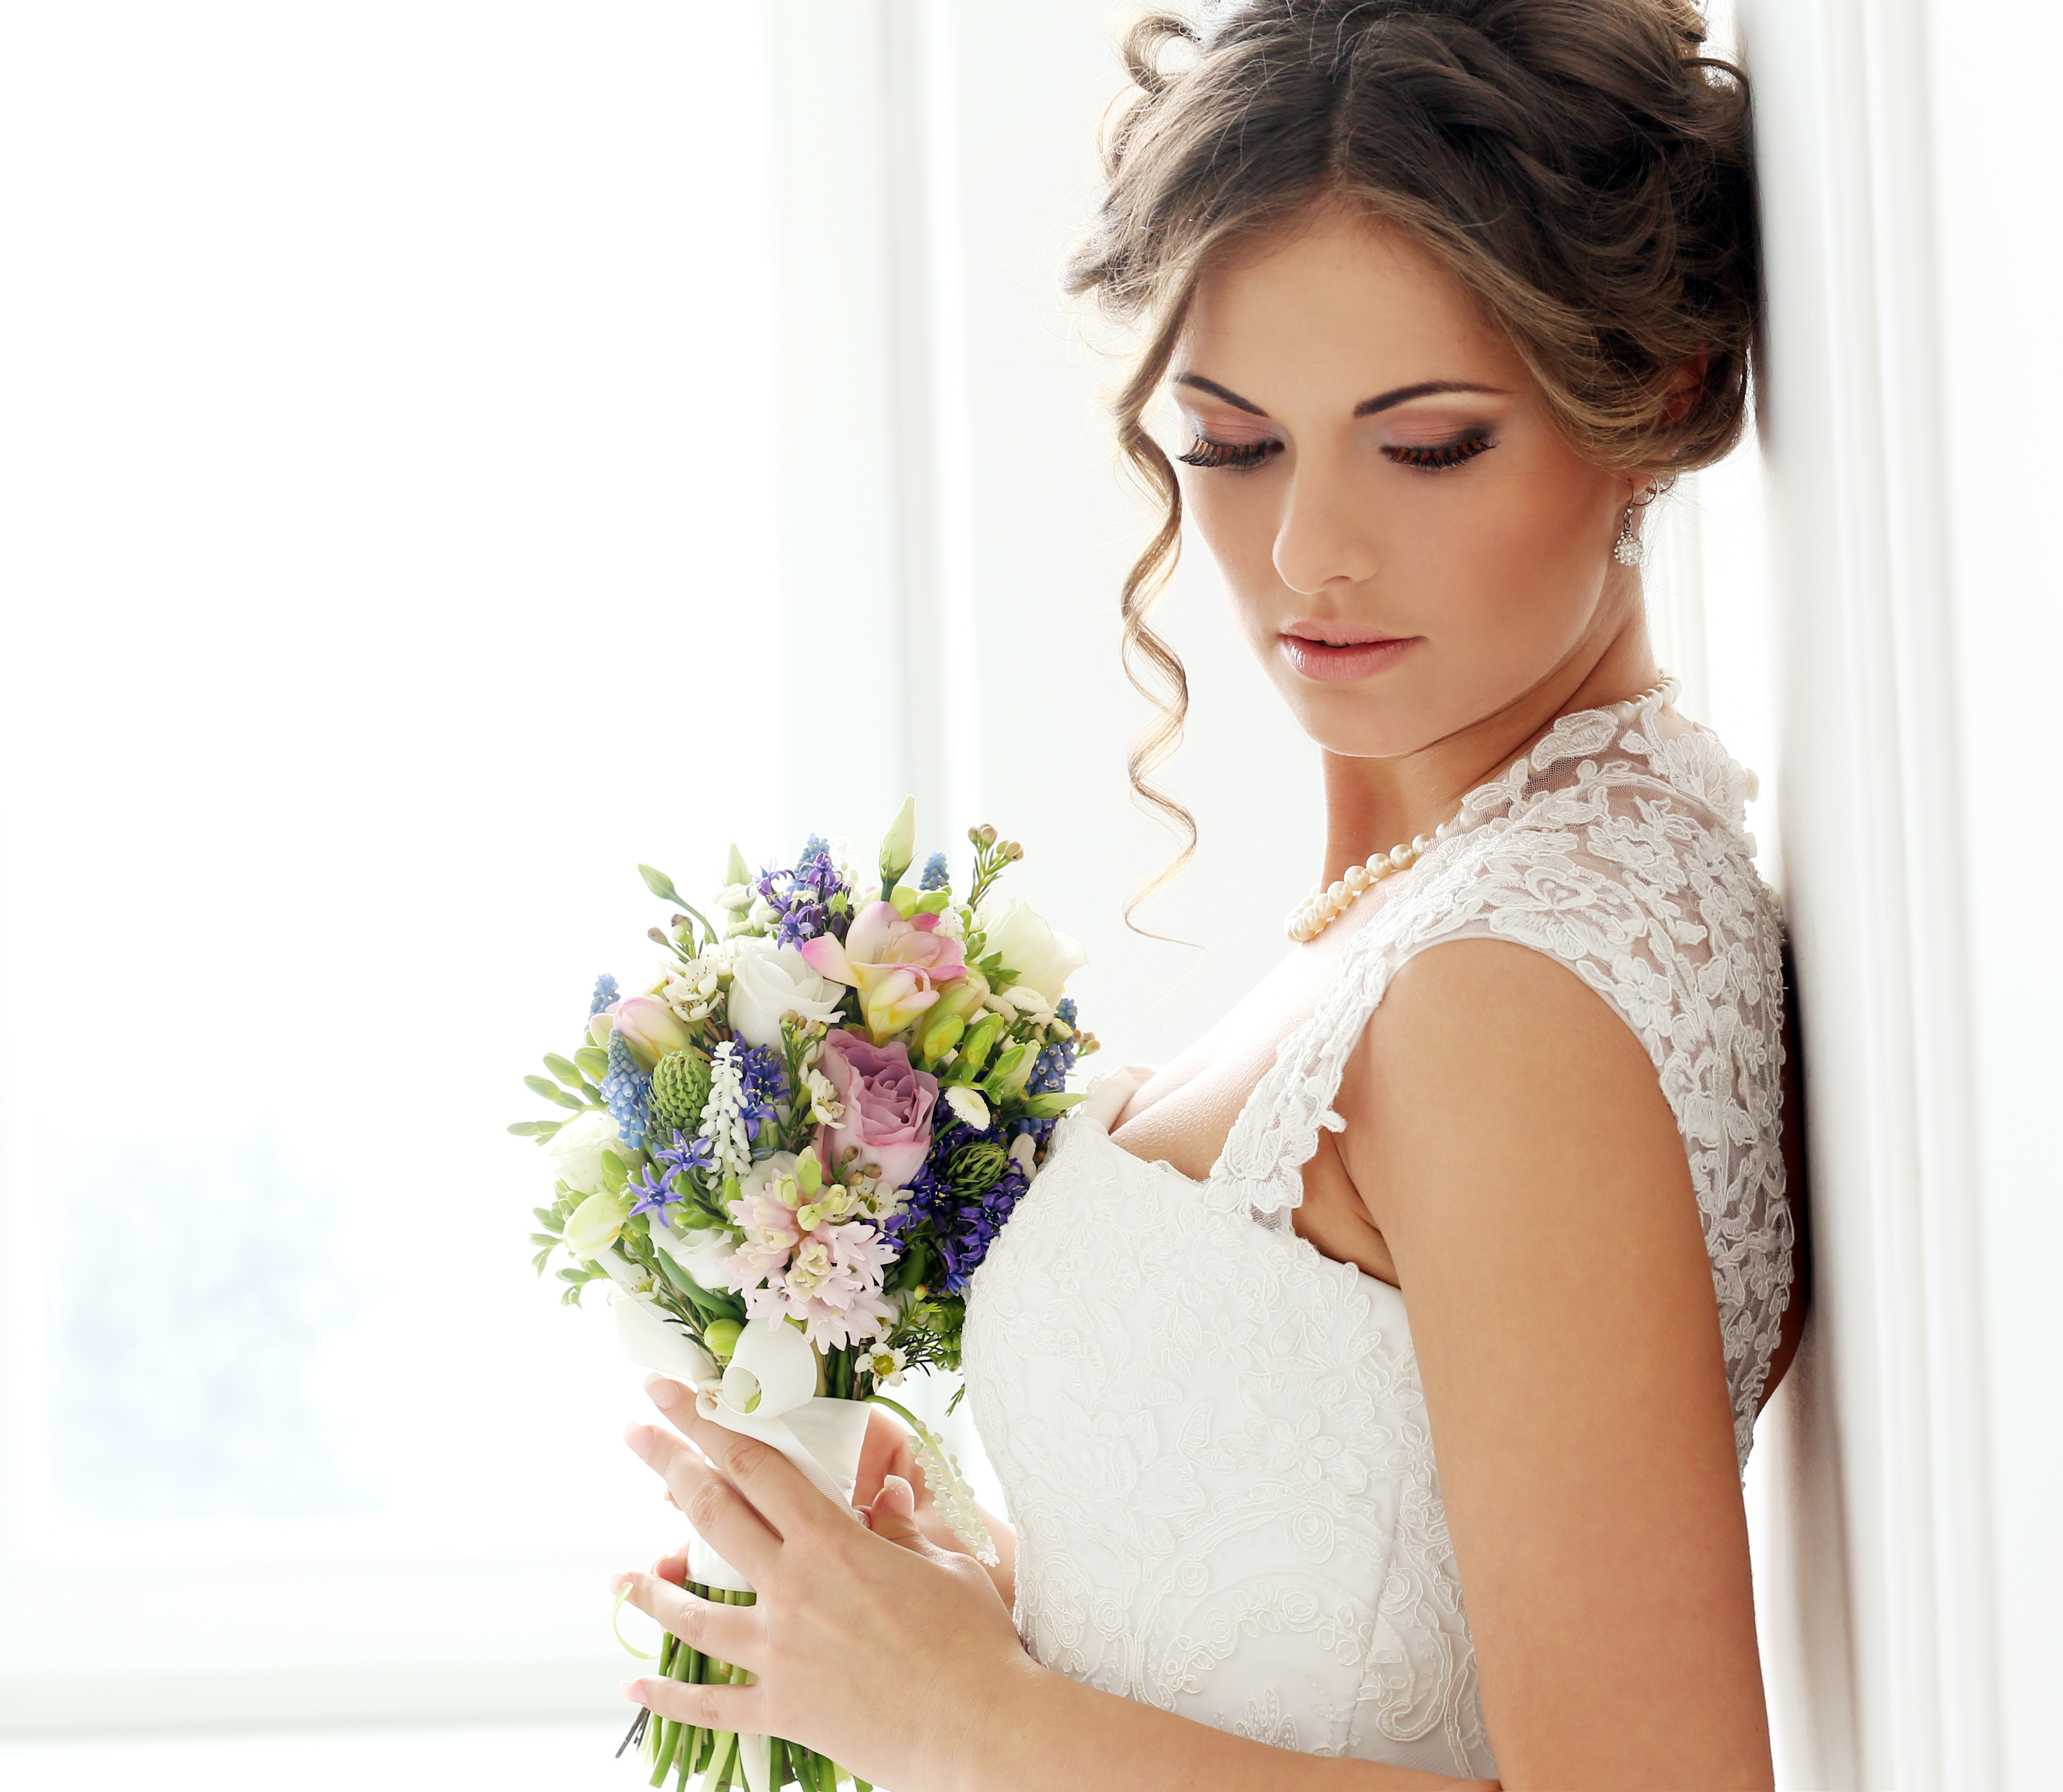 Gallery Prettiest Real Bride Wedding Hairstyles: ATTENTION BRIDES OF 2016 - Wexford